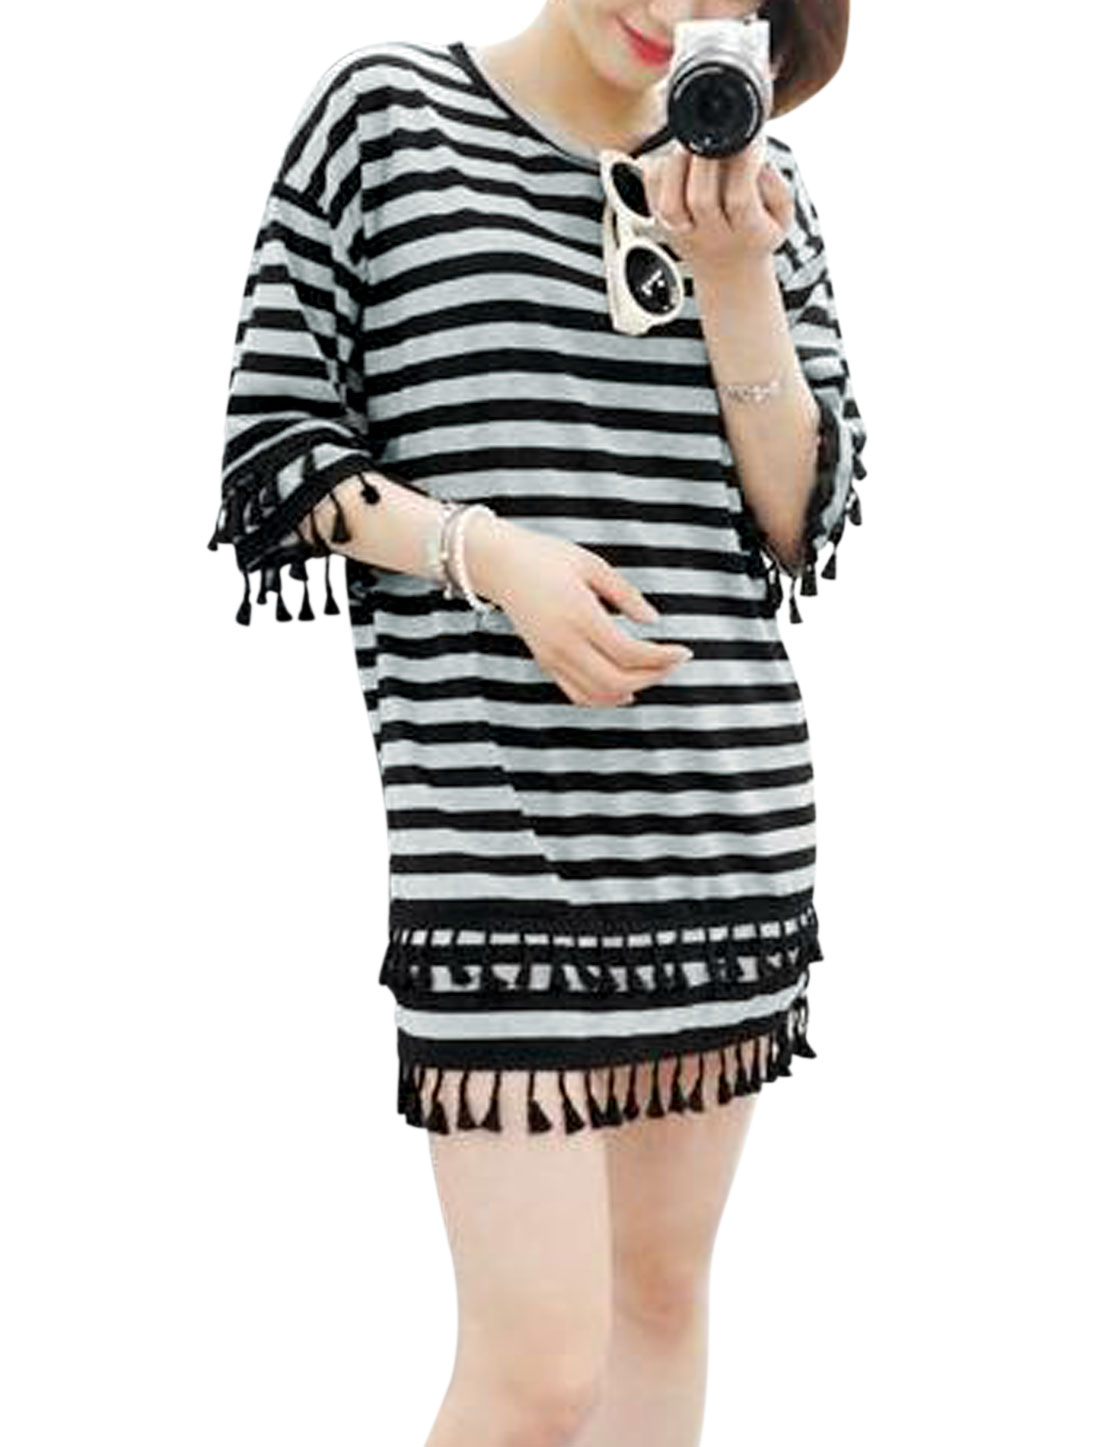 Ladies 3/4 Sleeve Round Neck Stripes Print Tassels Unlined Dress Black Gray S